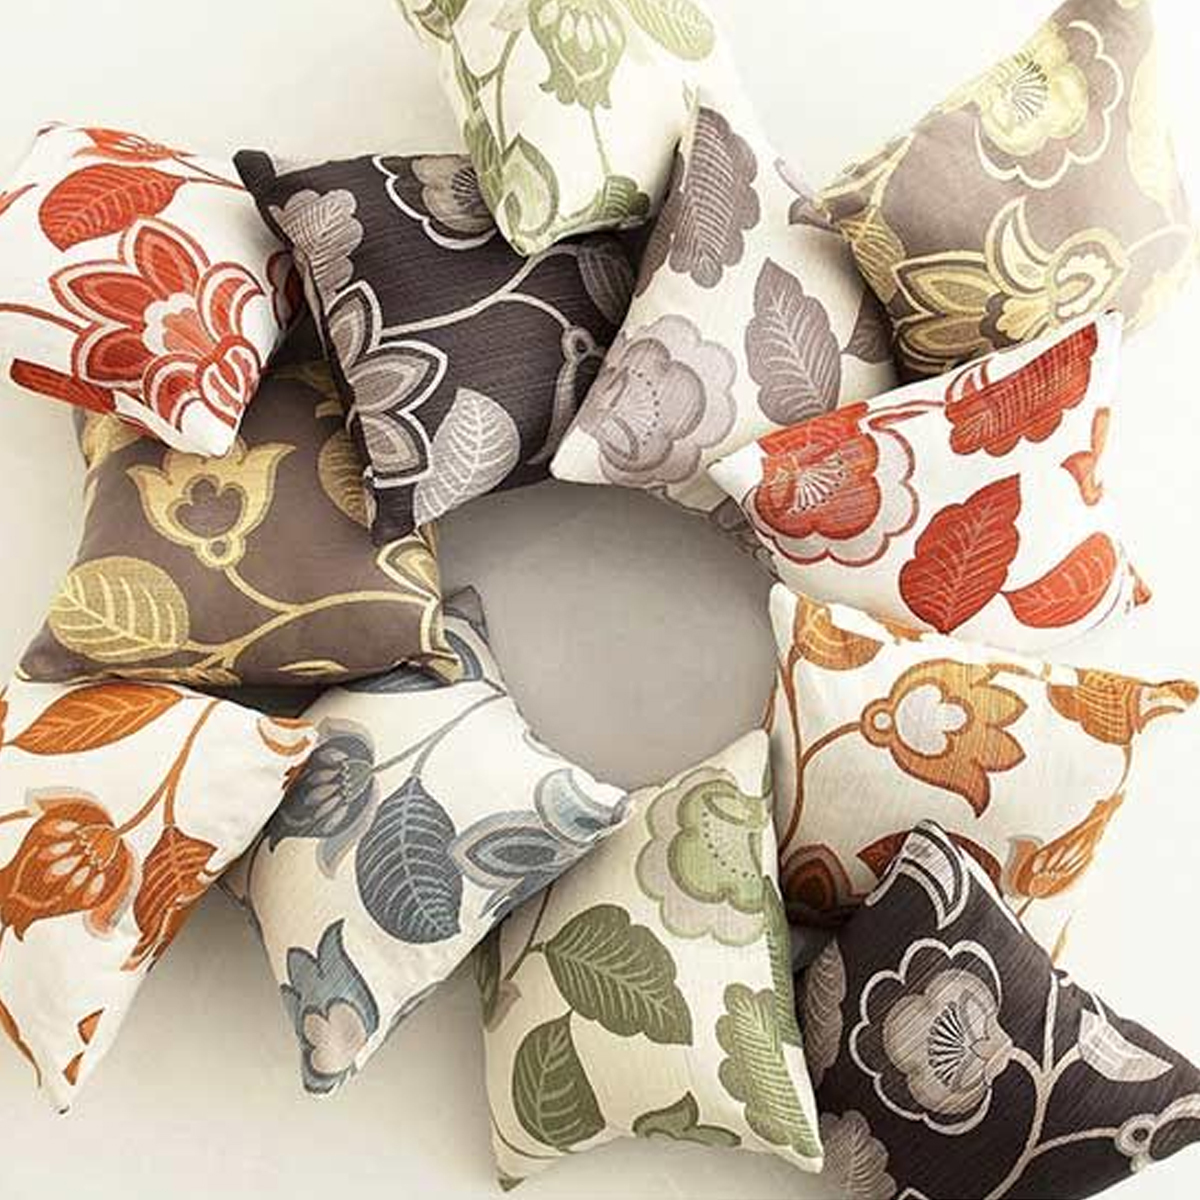 Floral-accented throw pillows that can add a little pop of color to any space. photo